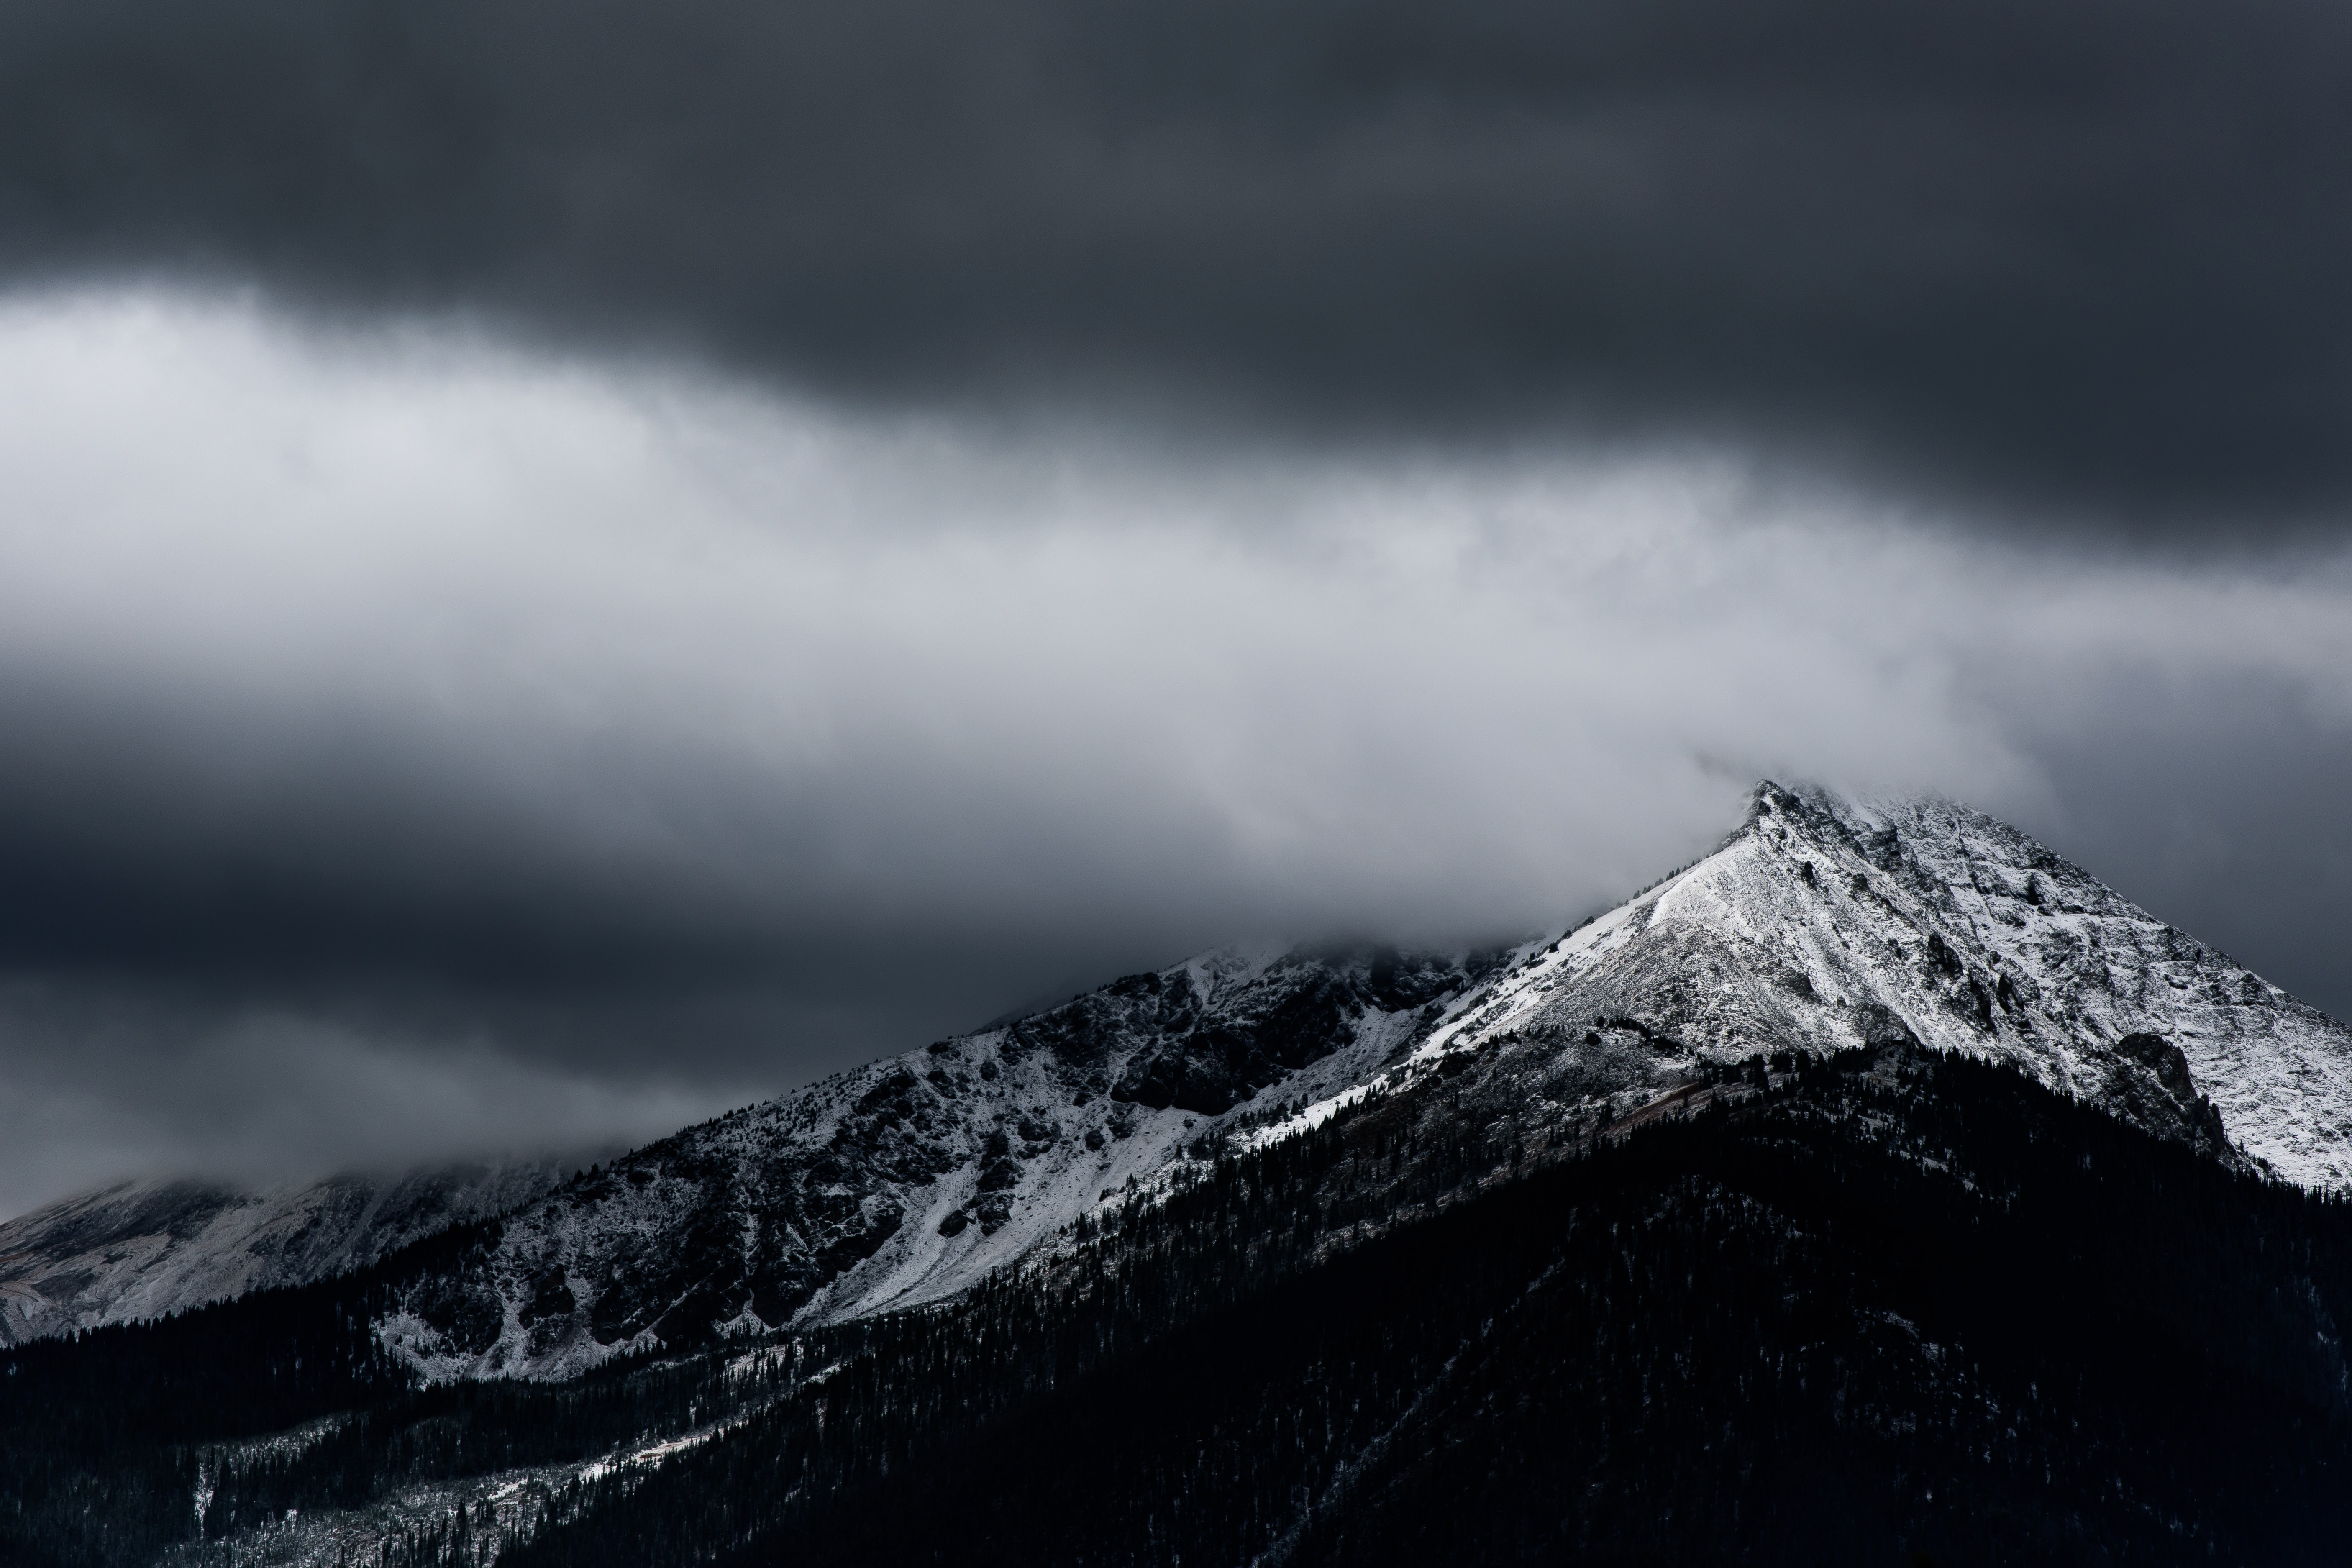 Sharp snow-capped mountain ridge in Silverthorne under heavy gray clouds